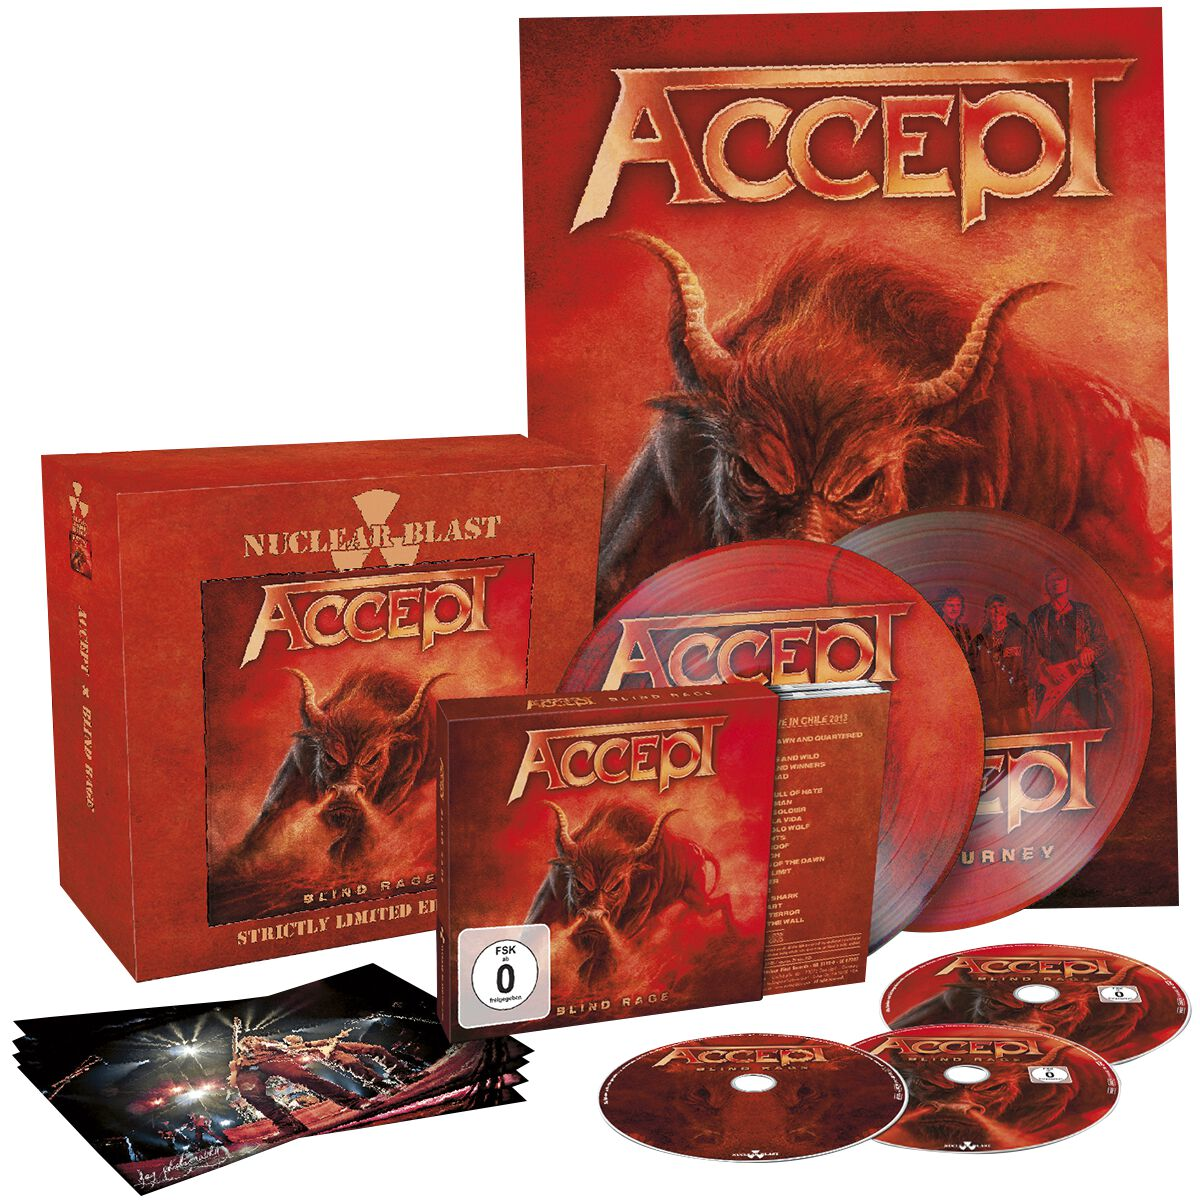 Image of Accept Blind rage CD & DVD & Blu-ray & 2 x 7 inch Standard